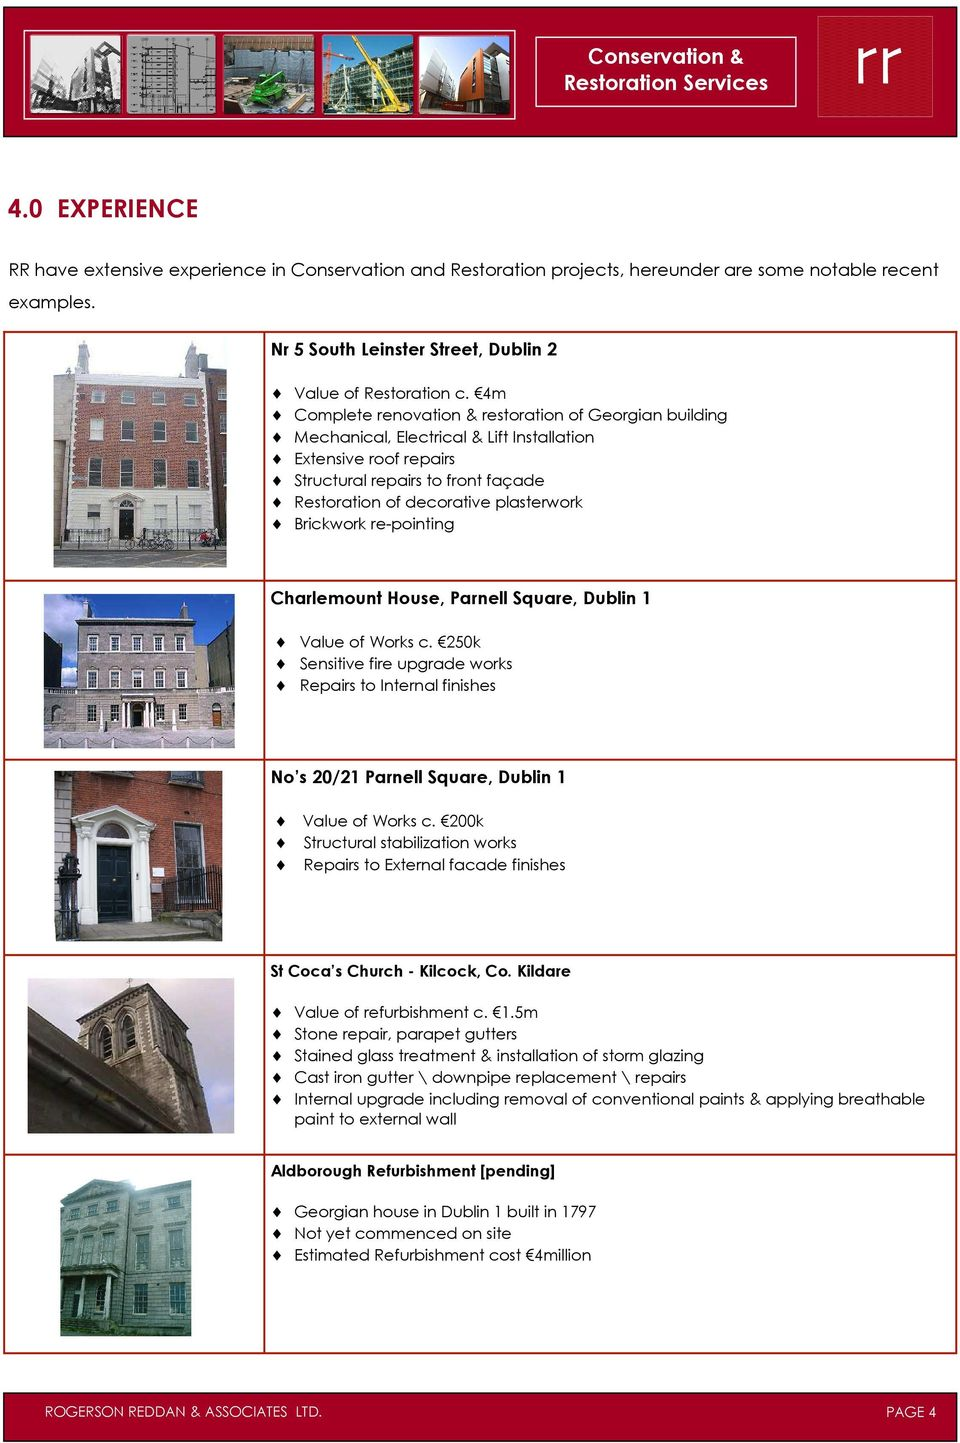 Brickwork re-pointing Charlemount House, Parnell Square, Dublin 1 Value of Works c. 250k Sensitive fire upgrade works Repairs to Internal finishes No s 20/21 Parnell Square, Dublin 1 Value of Works c.